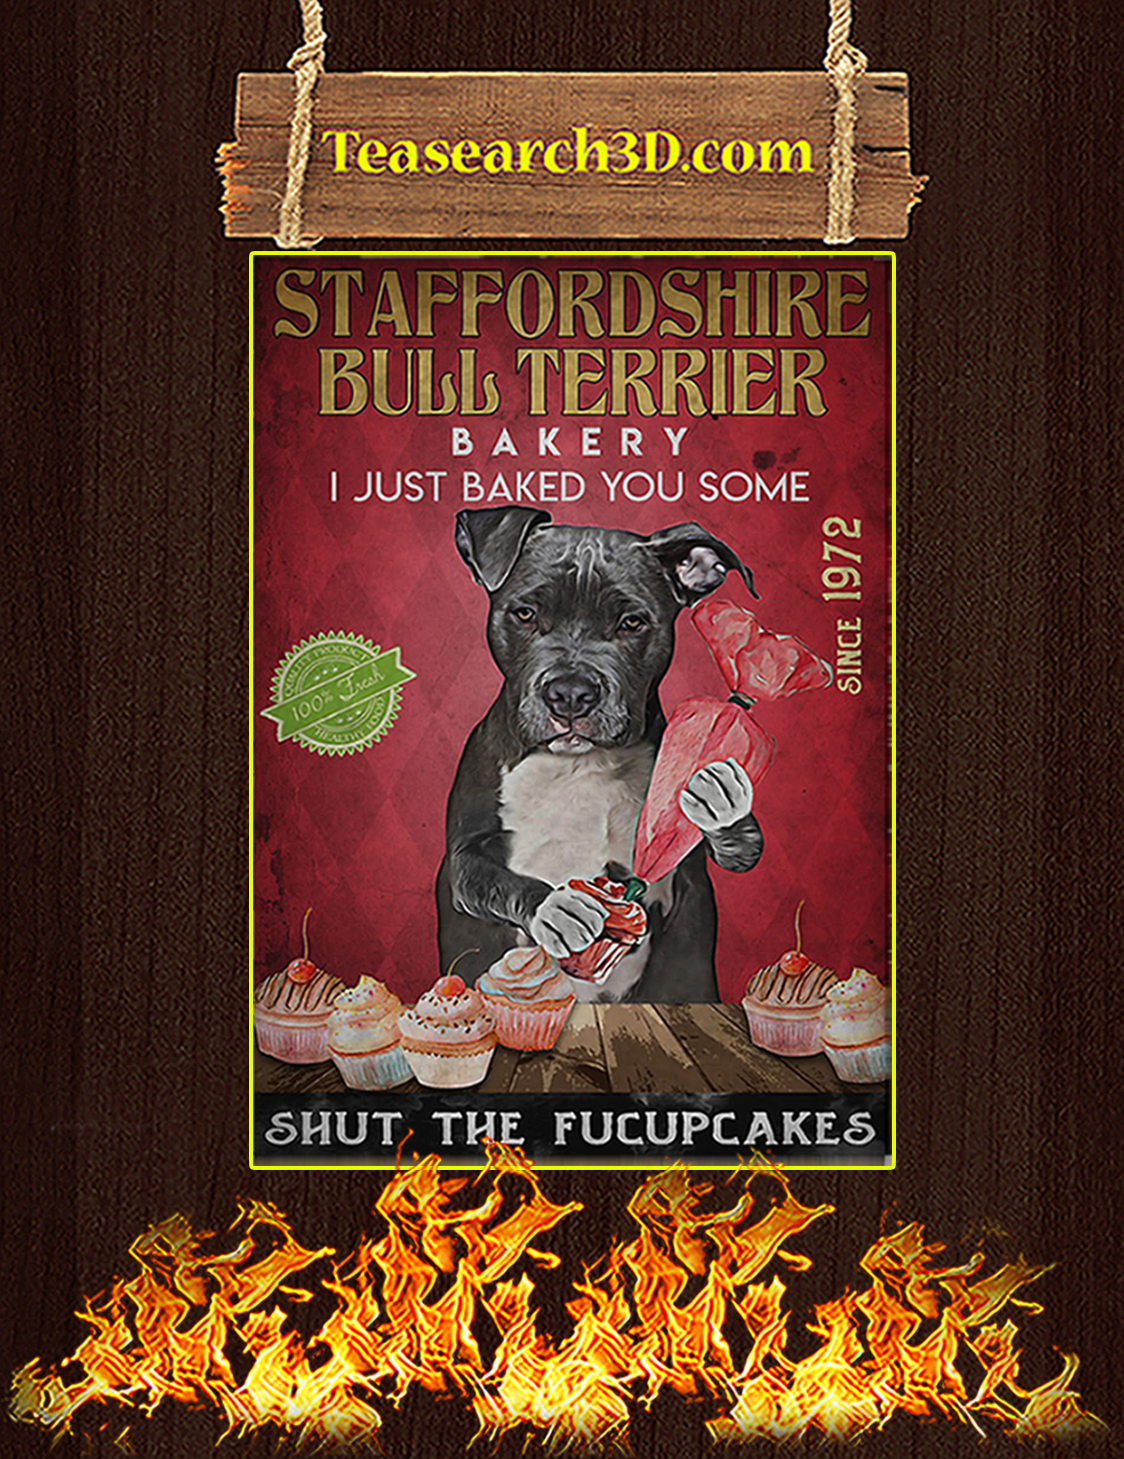 Staffordshire bull terrier fucupcakes bakery I just baked you some poster A3